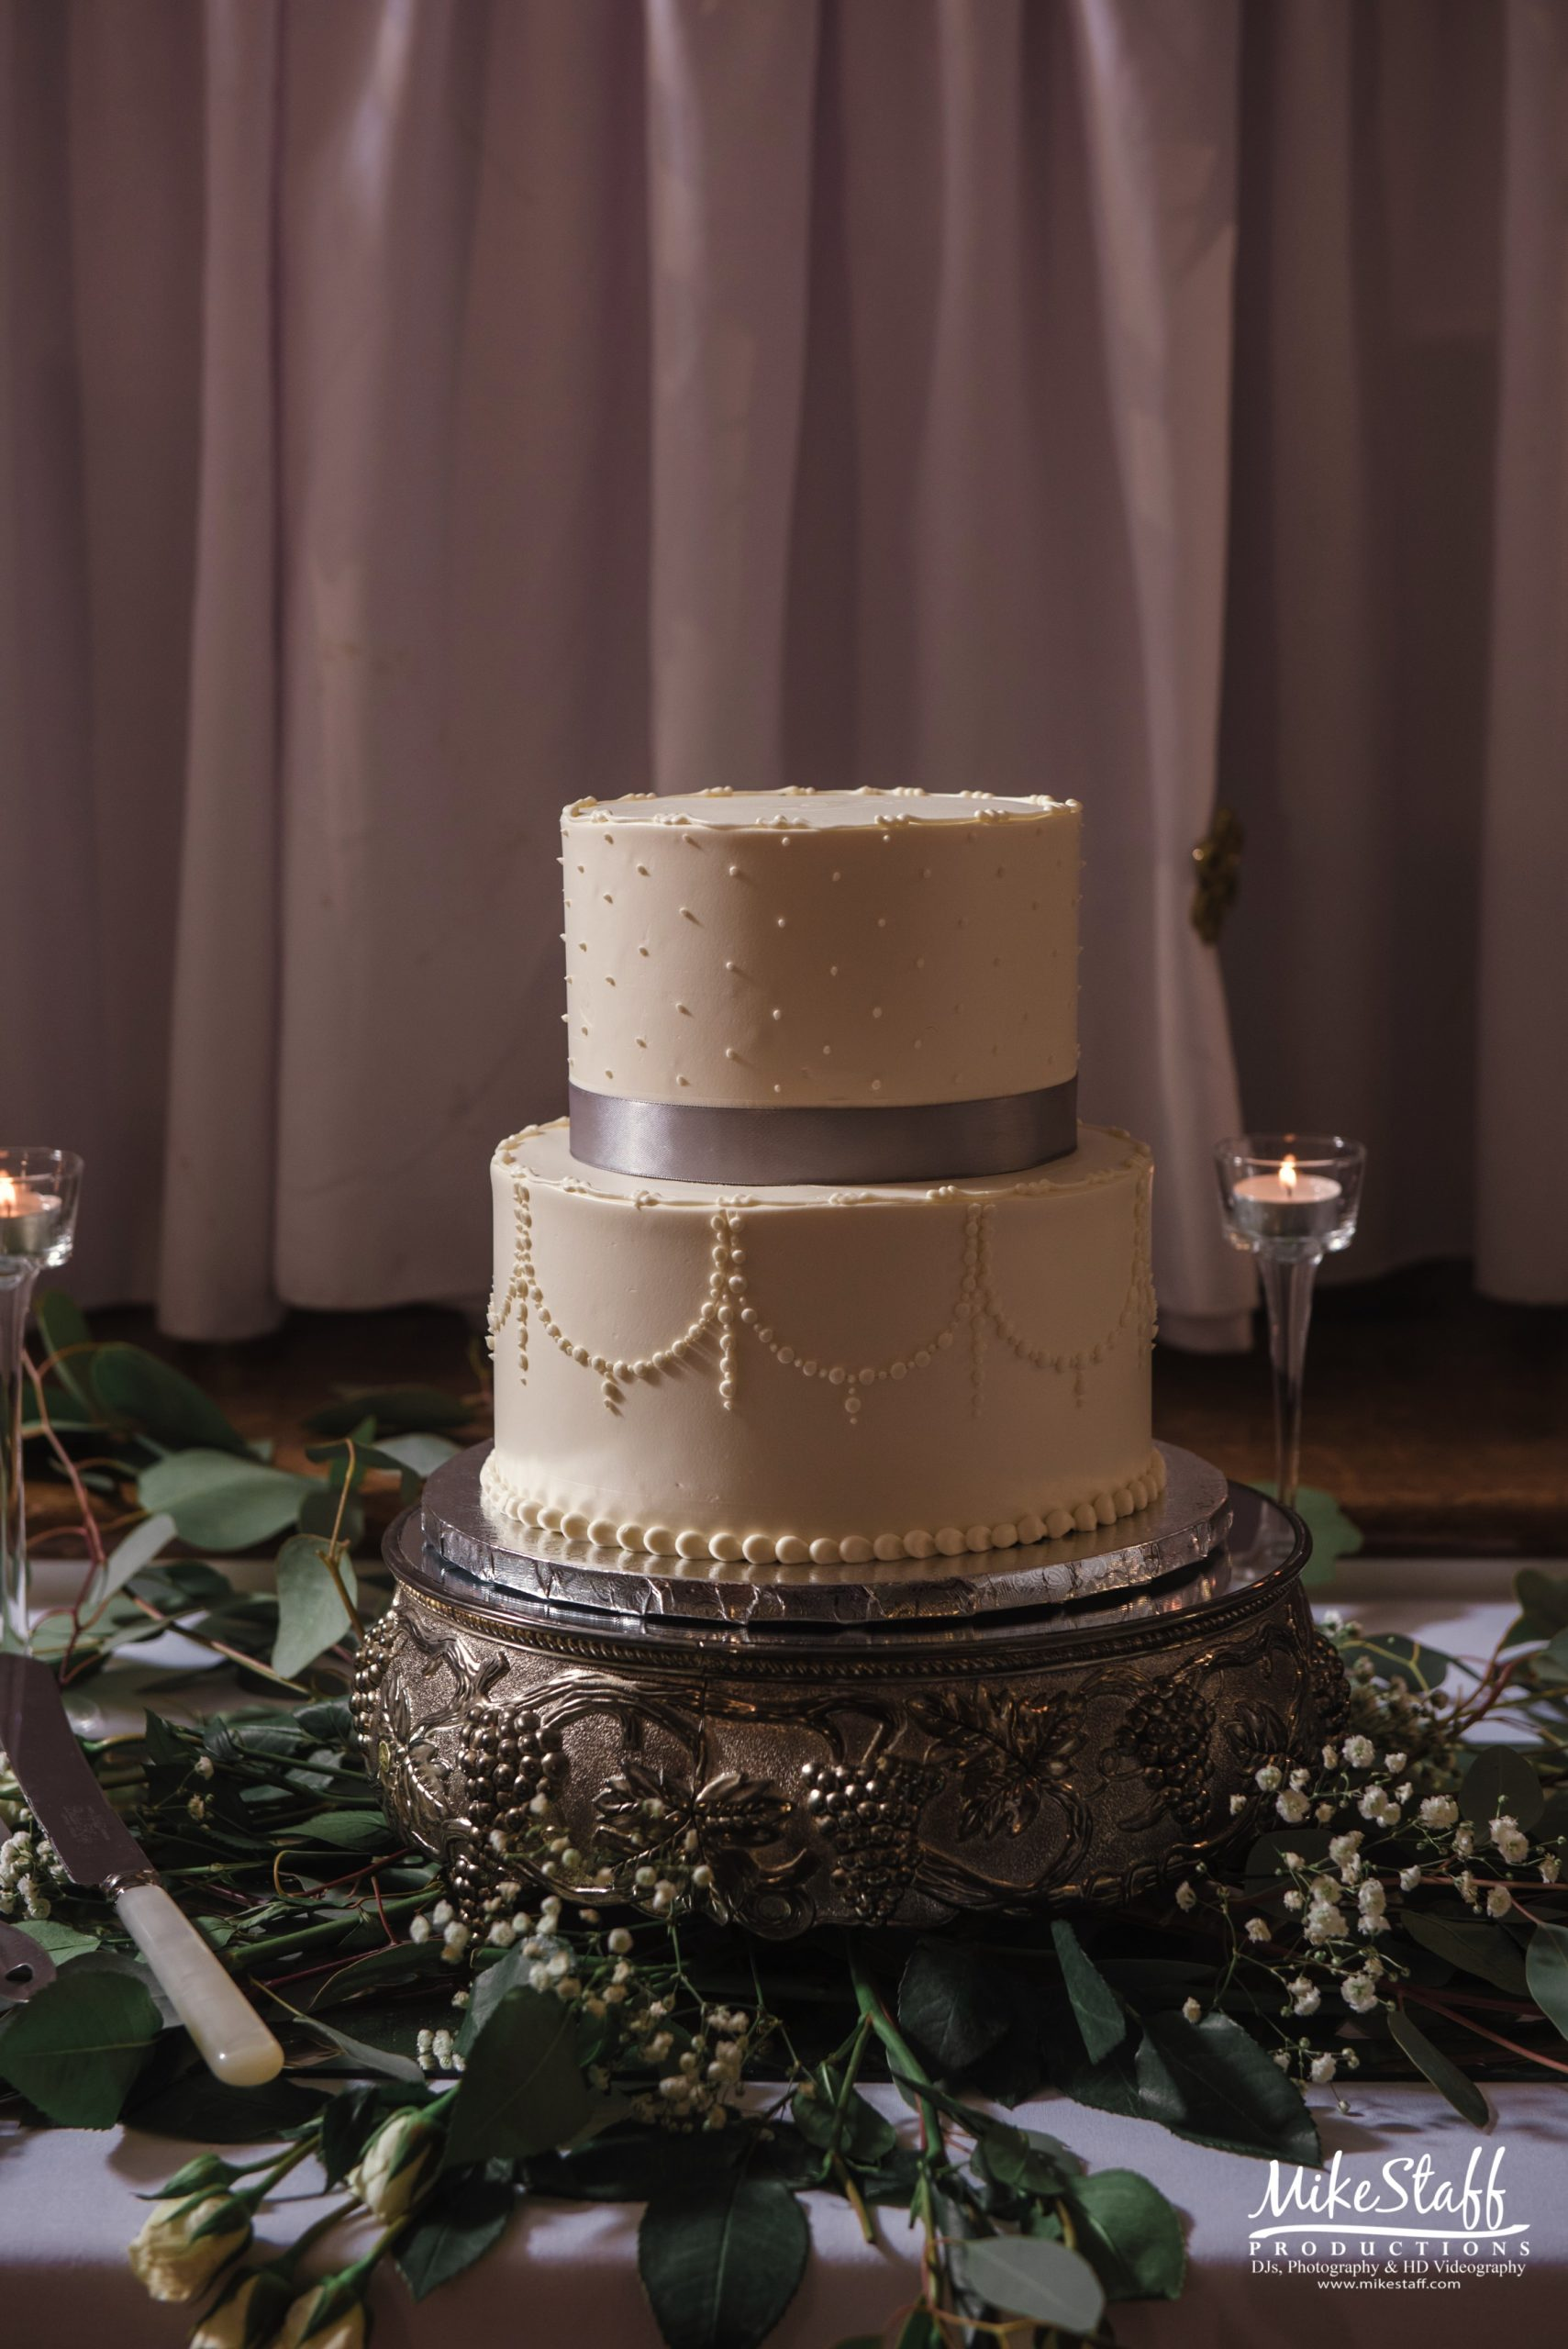 wedding cake details shot